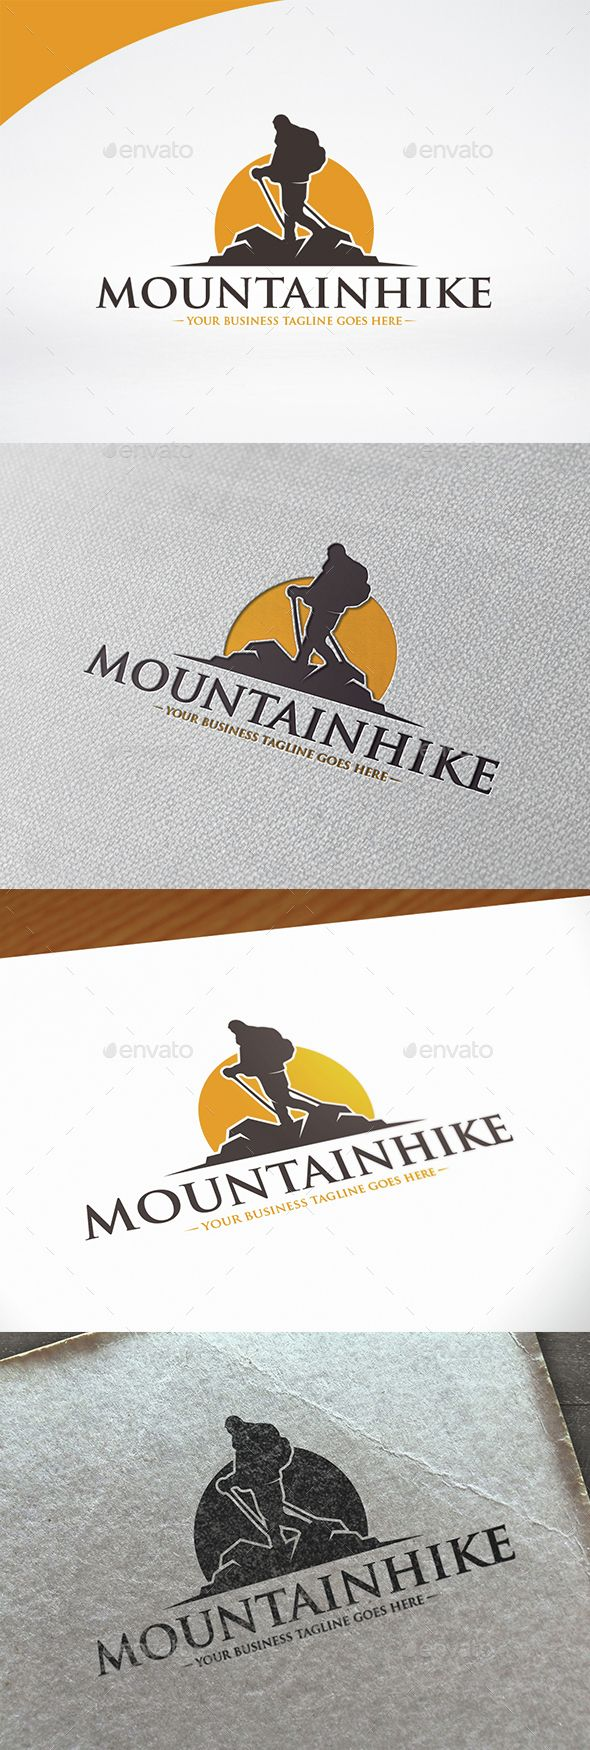 Mountain Hike - Logo Design Template Vector #logotype Download it here: http://graphicriver.net/item/mountain-hike-logo-template/15072536?s_rank=85?ref=nesto